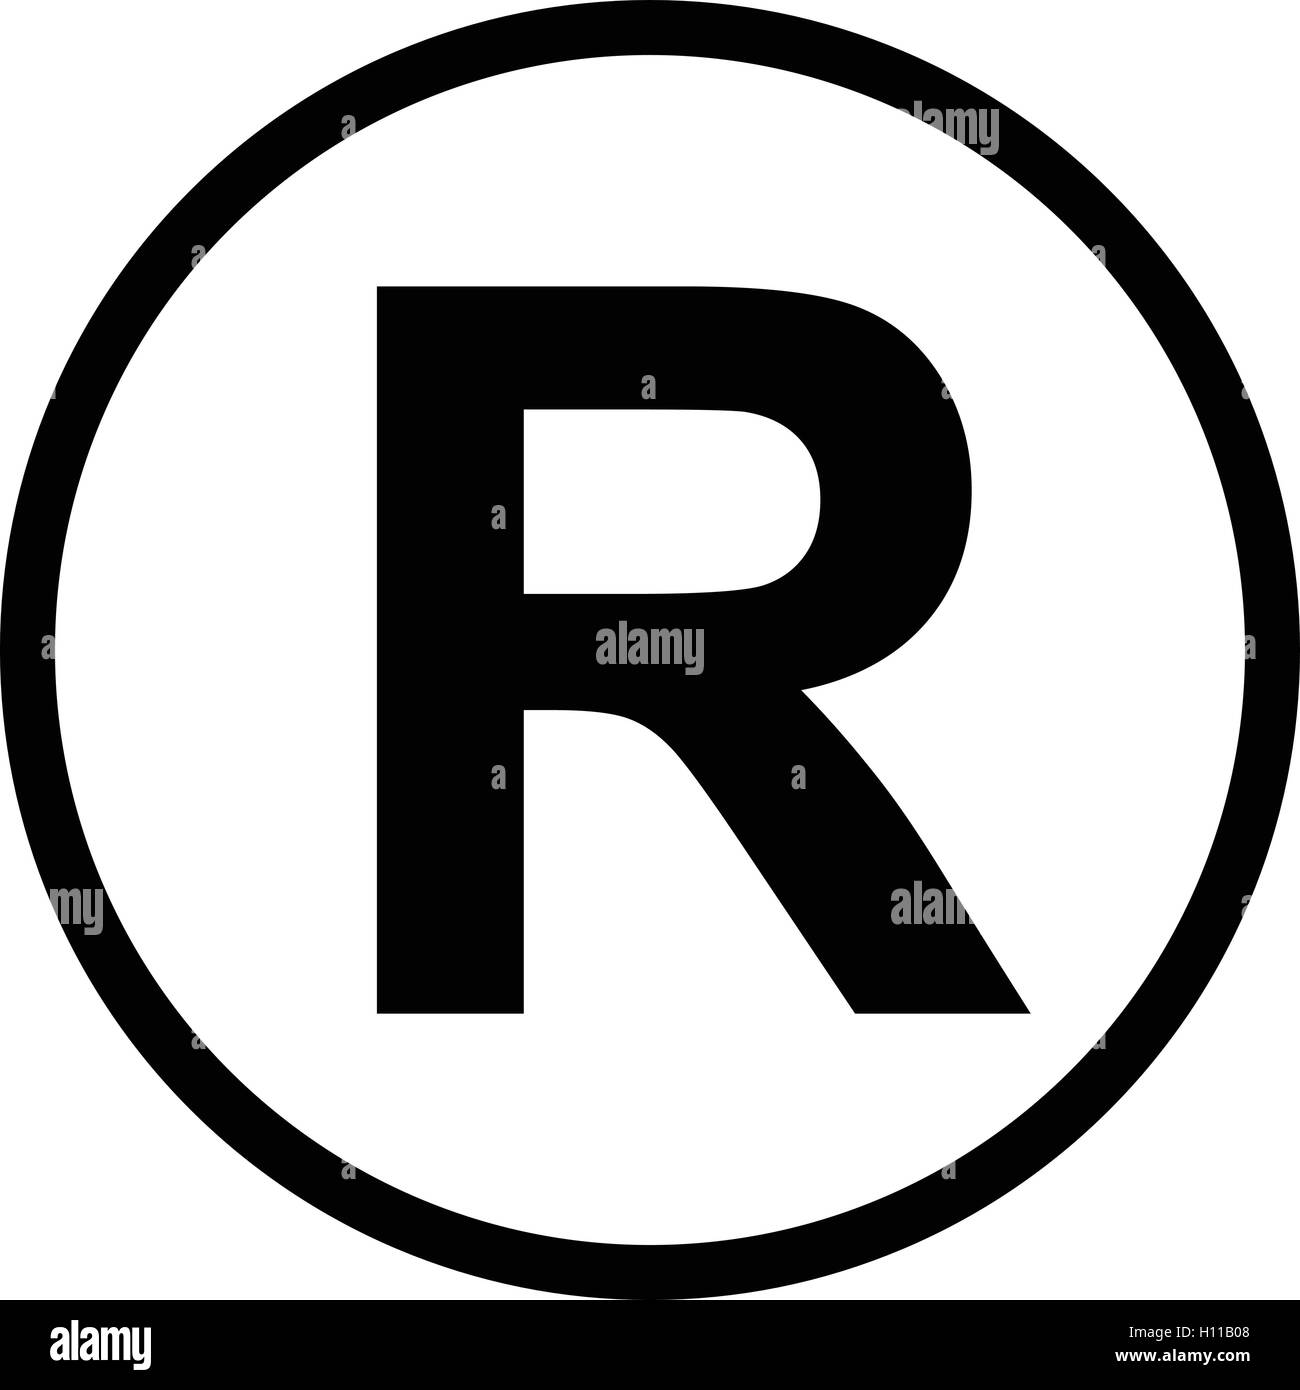 How Do You Make Registered Trademark Symbol Gallery Meaning Of